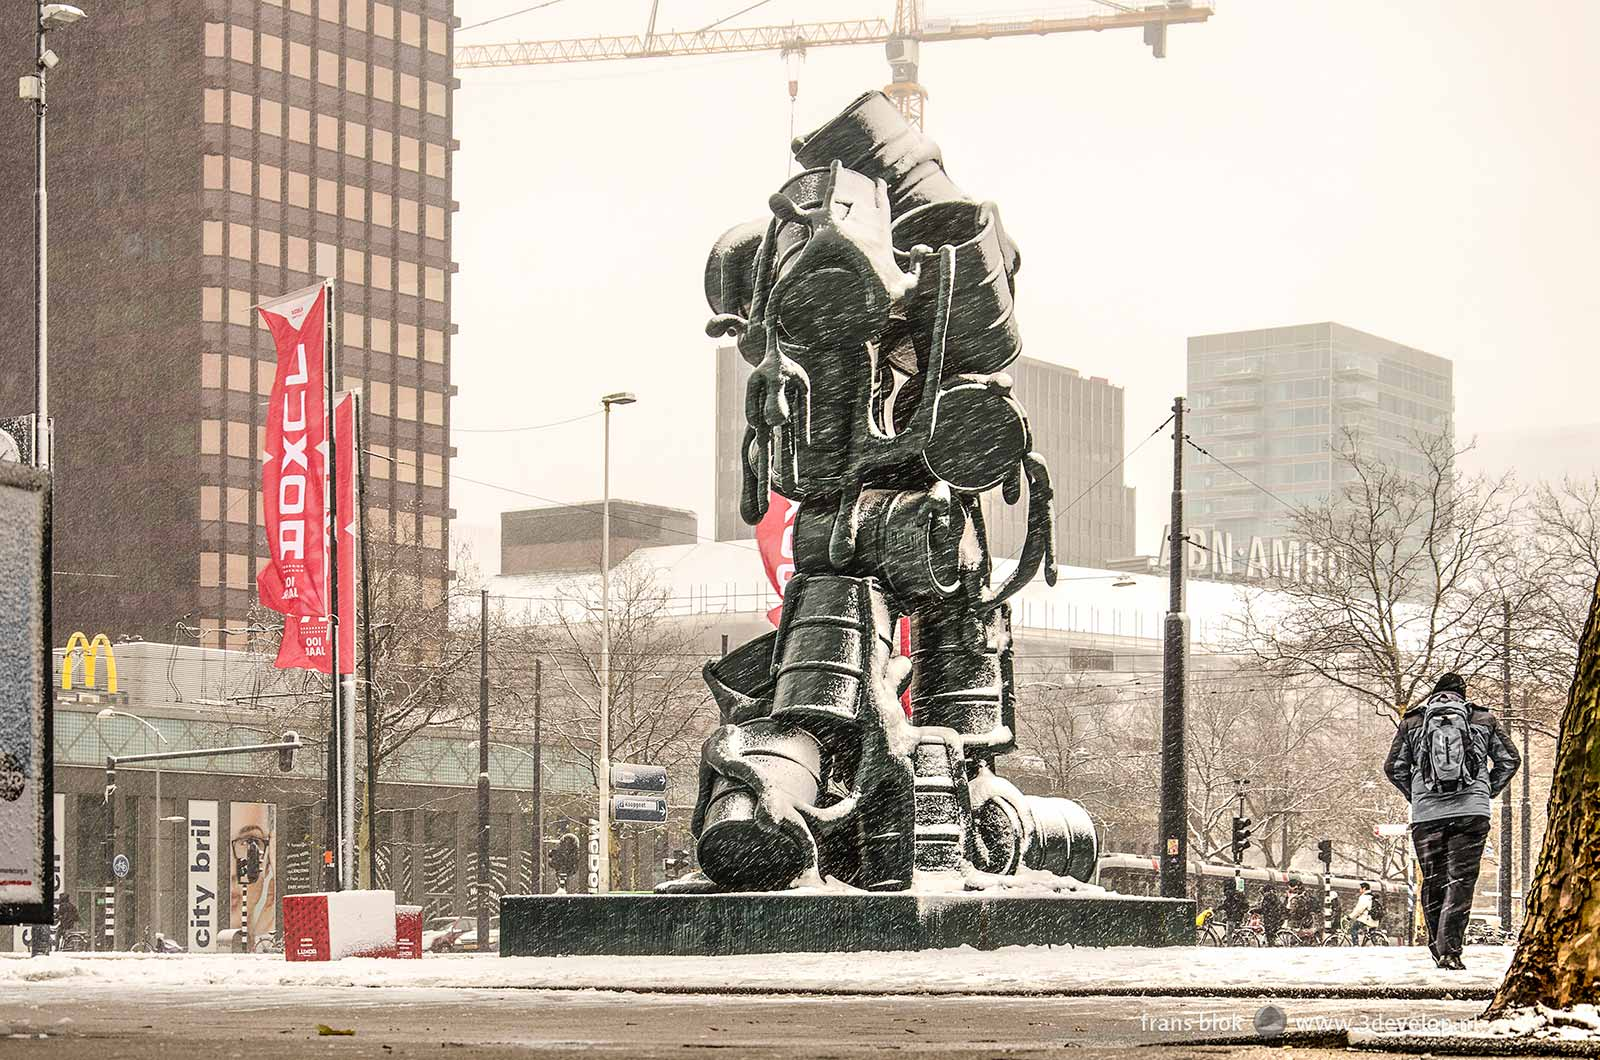 Churchill Square in Rotterdam with the Cascade sculpture by Joep van Lieshout during a snowstorm in december 2017